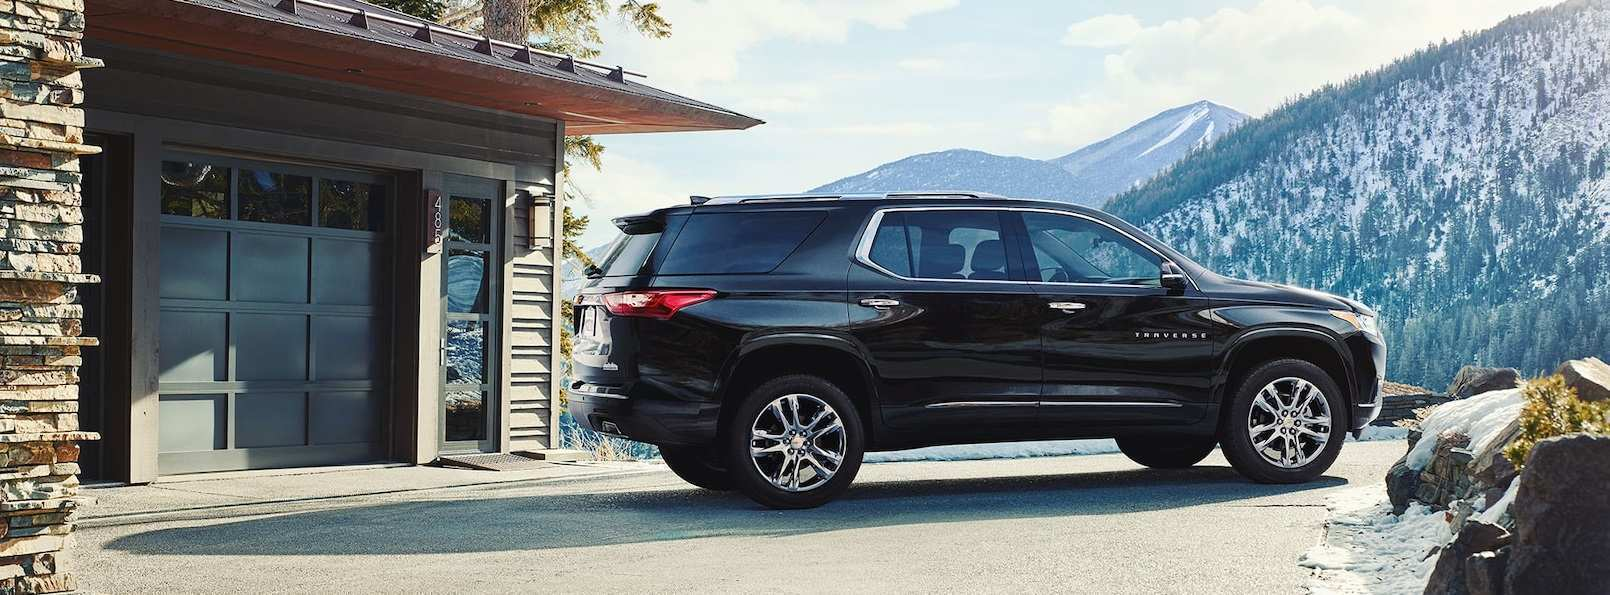 84 The Best 2019 Chevrolet Traverses Review And Release Date